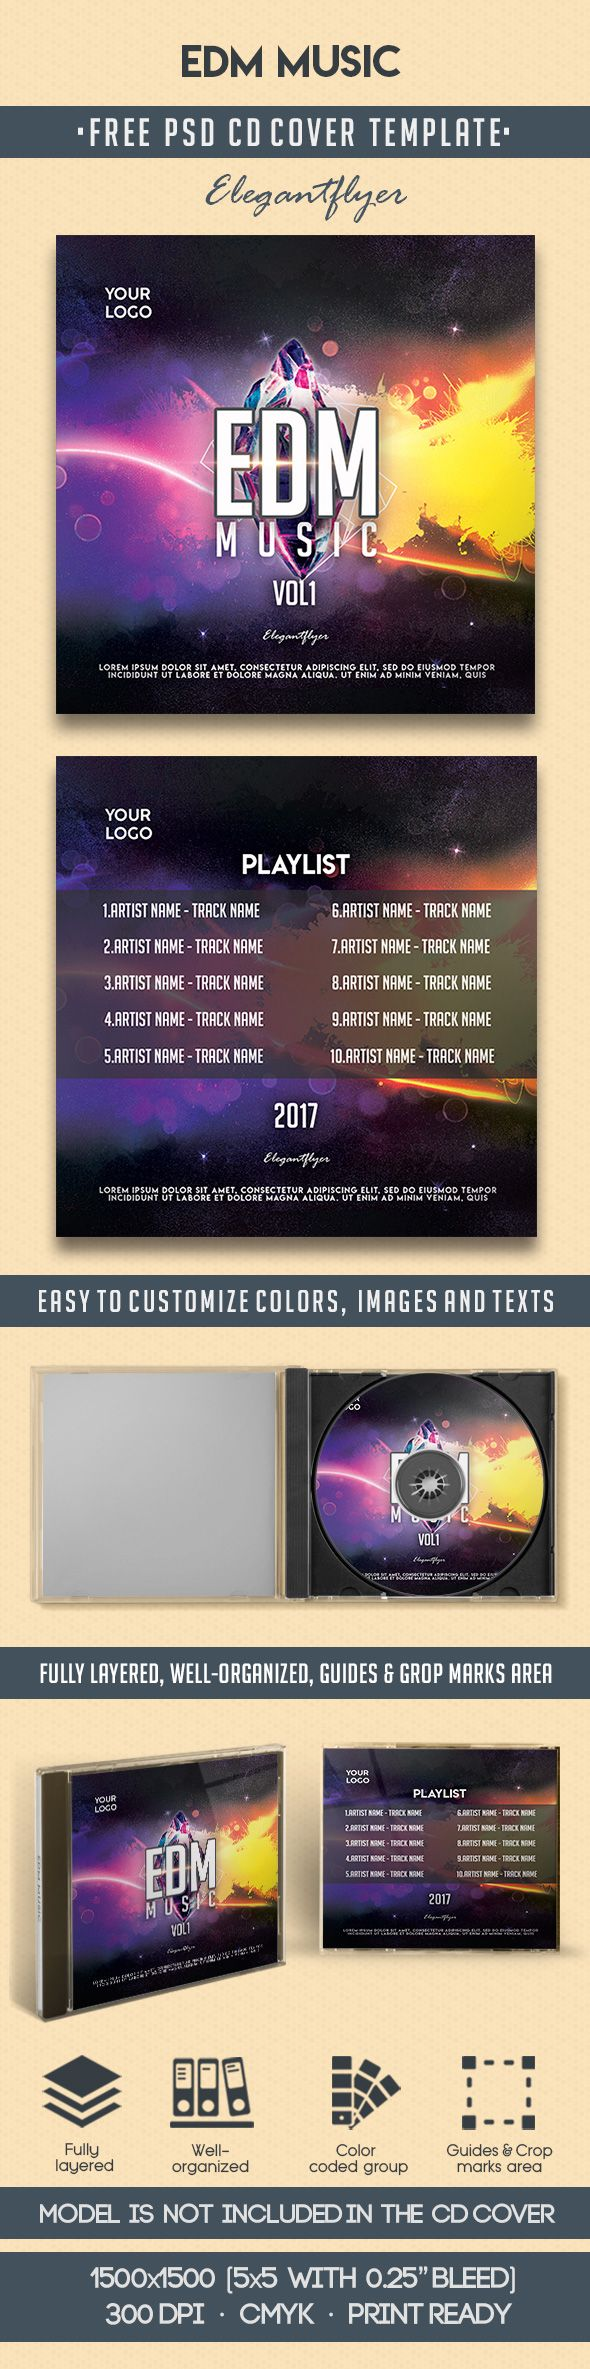 Edm Music – Free CD Cover PSD Template